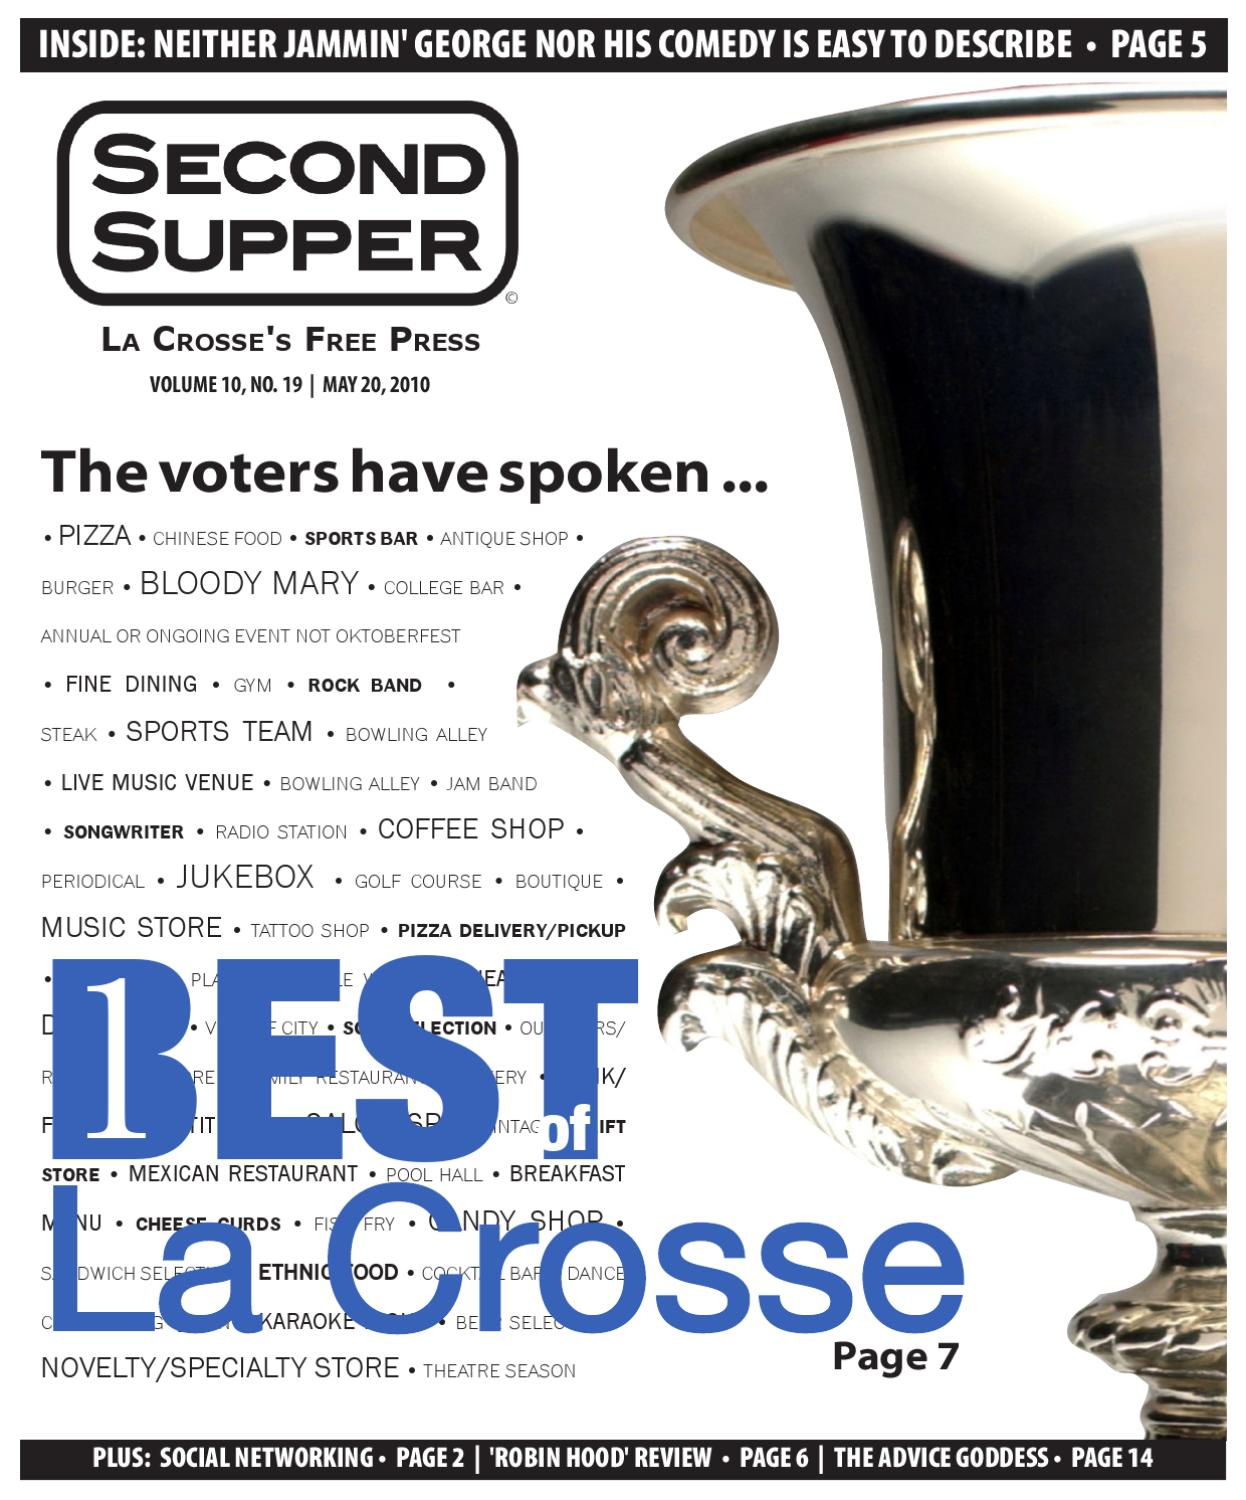 Second supper by second supper issuu for Tattoo shops in la crosse wi